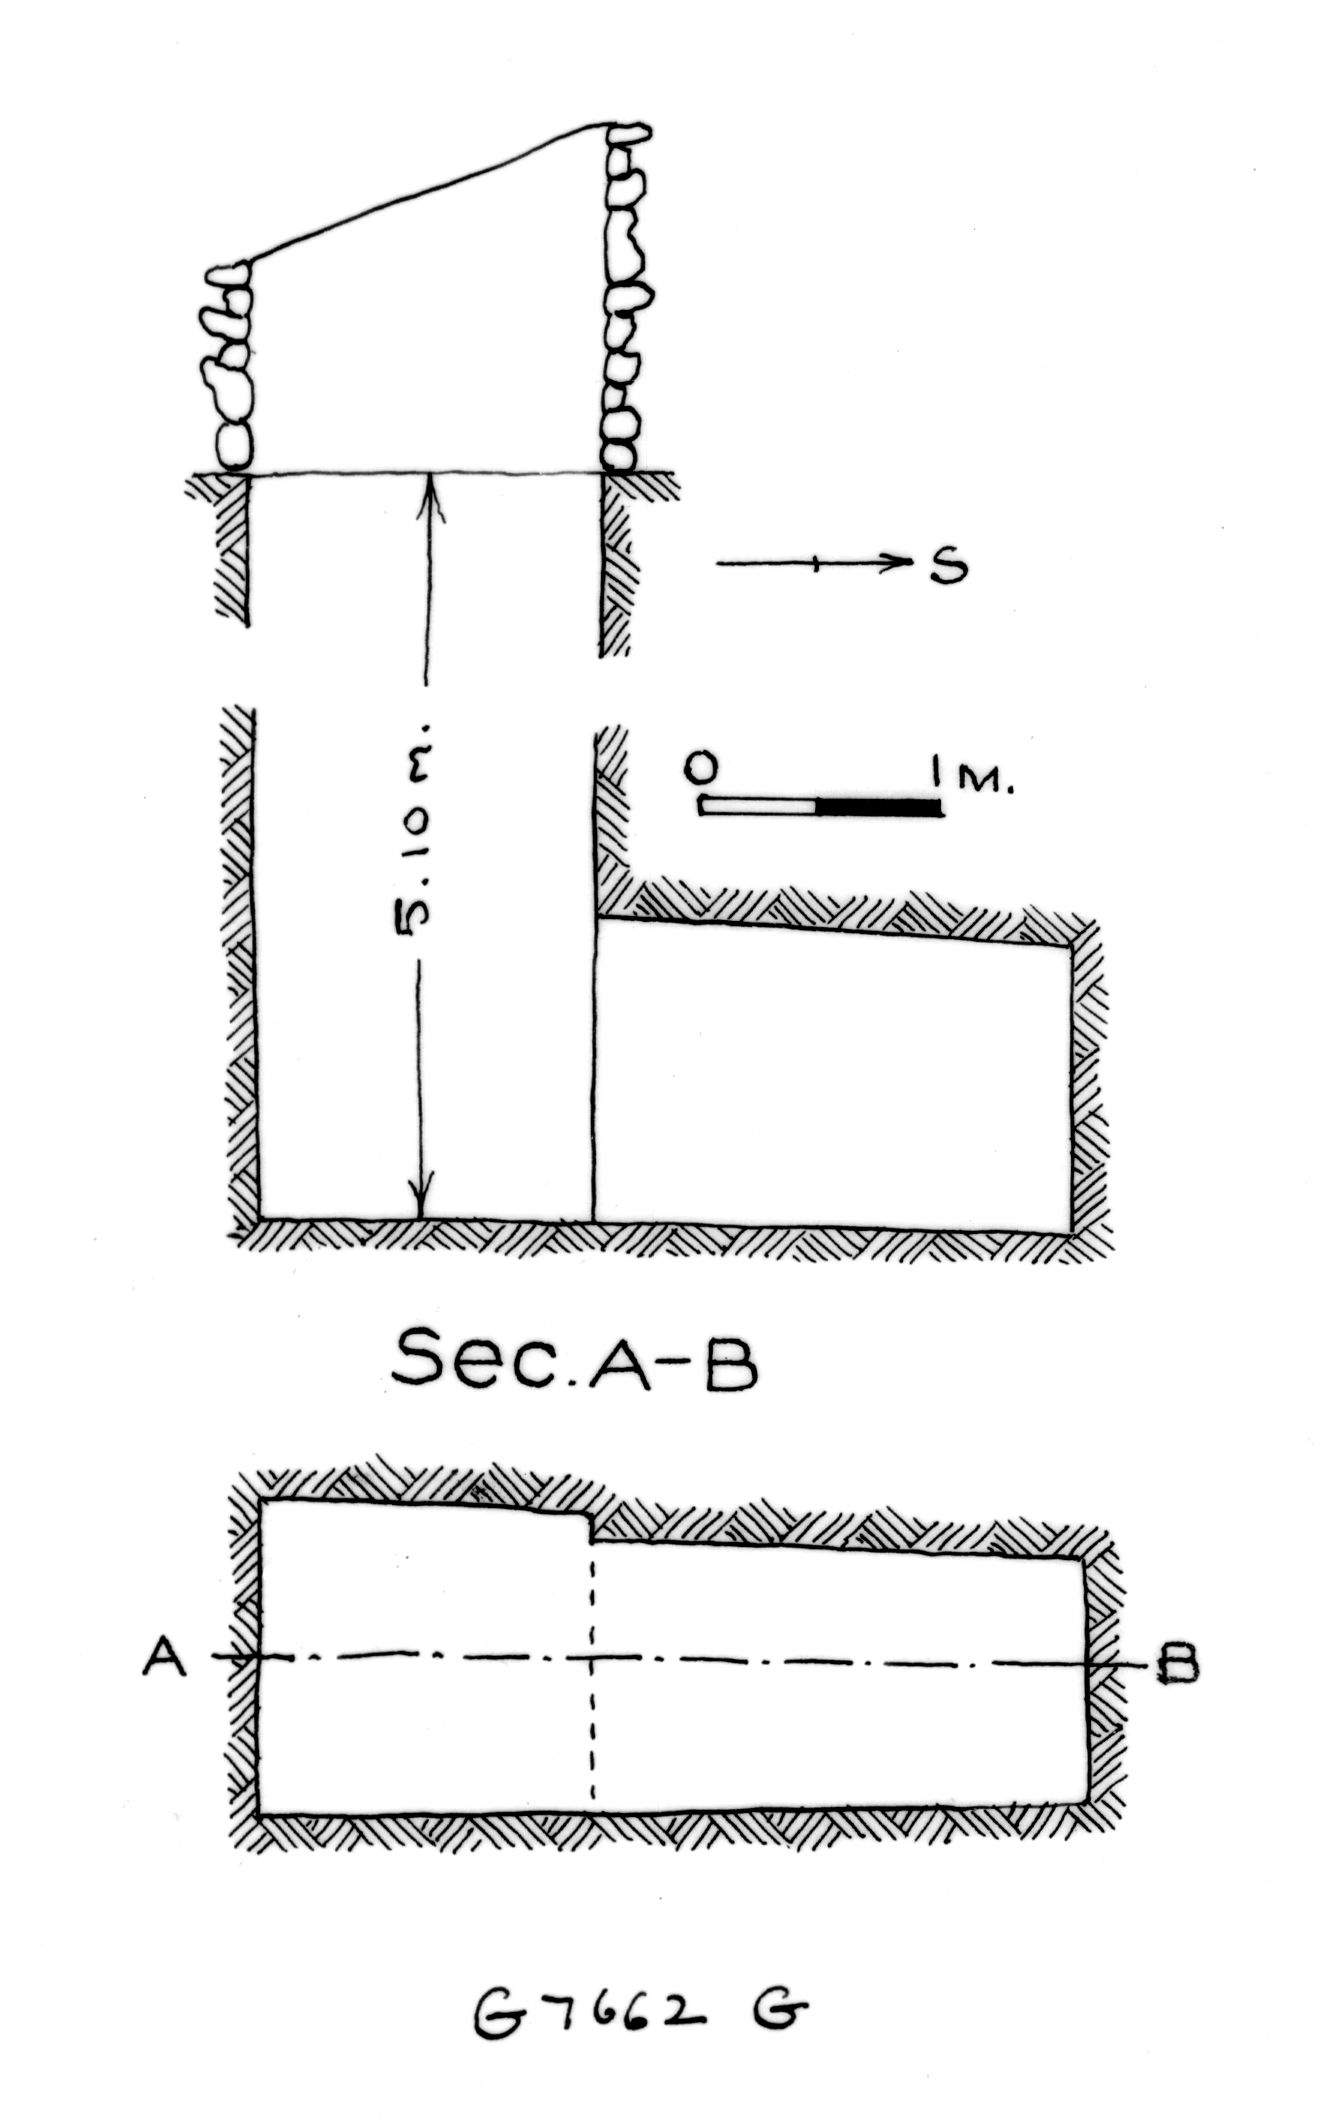 Maps and plans: G 7662, Shaft G